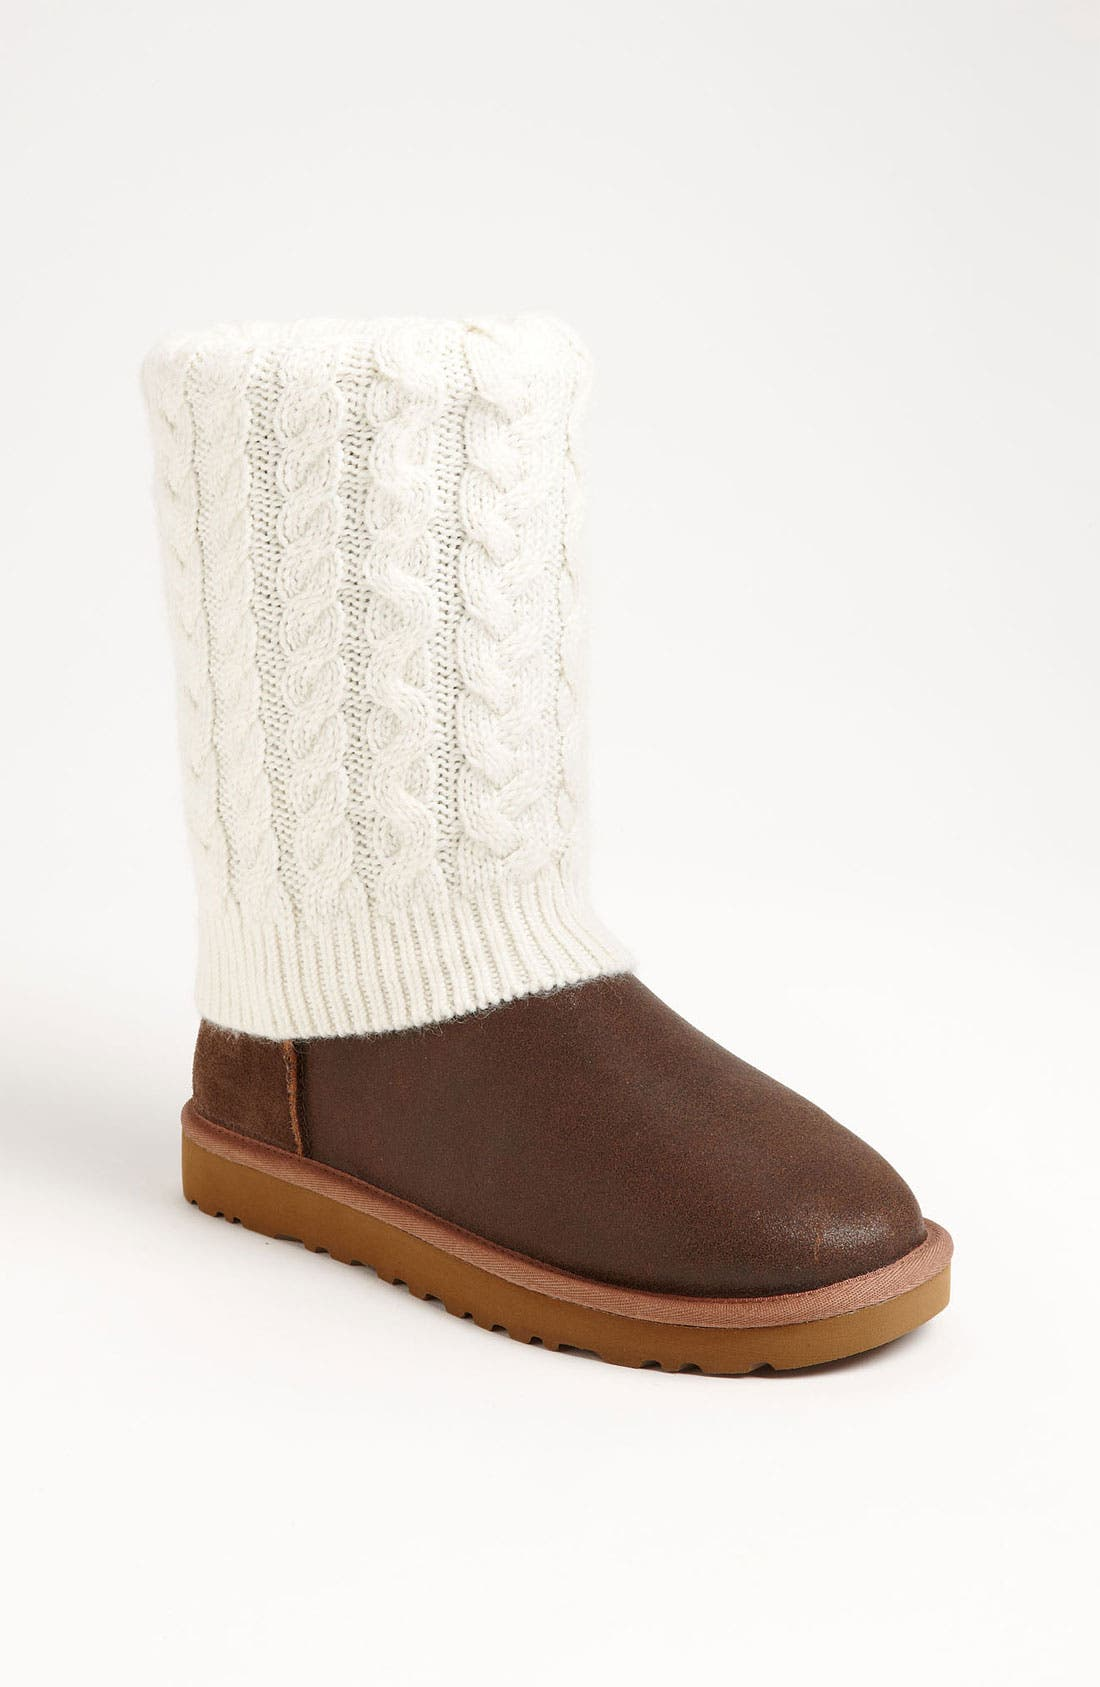 Main Image - UGG® Australia 'Tularosa Route Detachable' Boot with Removable Knit Overlay (Women)